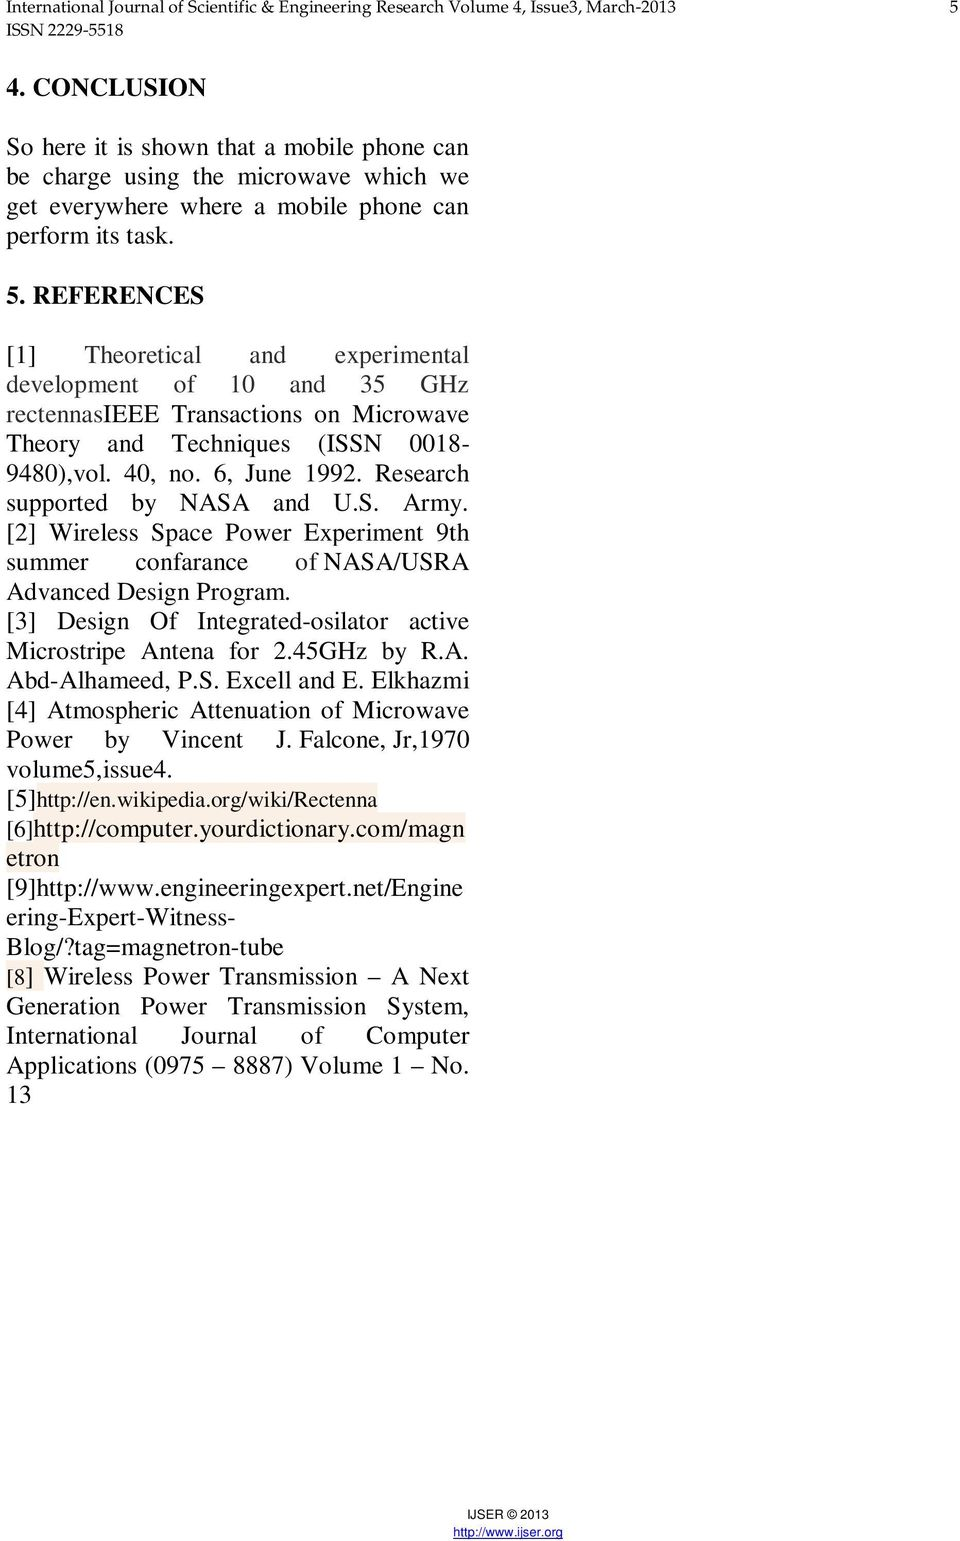 REFERENCES [1] Theoretical and experimental development of 10 and 35 GHz rectennasieee Transactions on Microwave Theory and Techniques (ISSN 0018-9480),vol. 40, no. 6, June 1992.